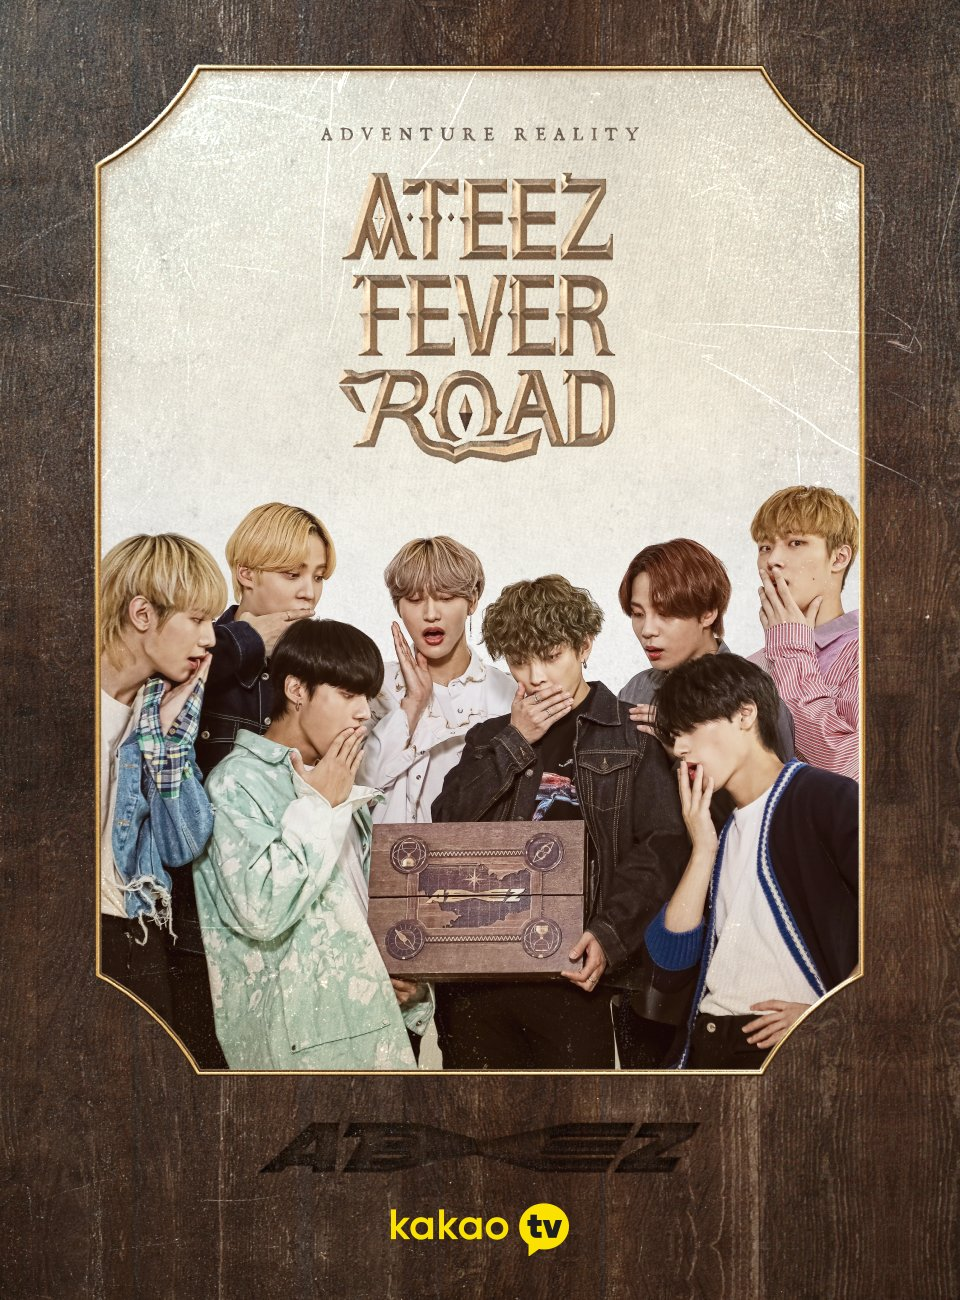 ATEEZ will have a new variety show soon